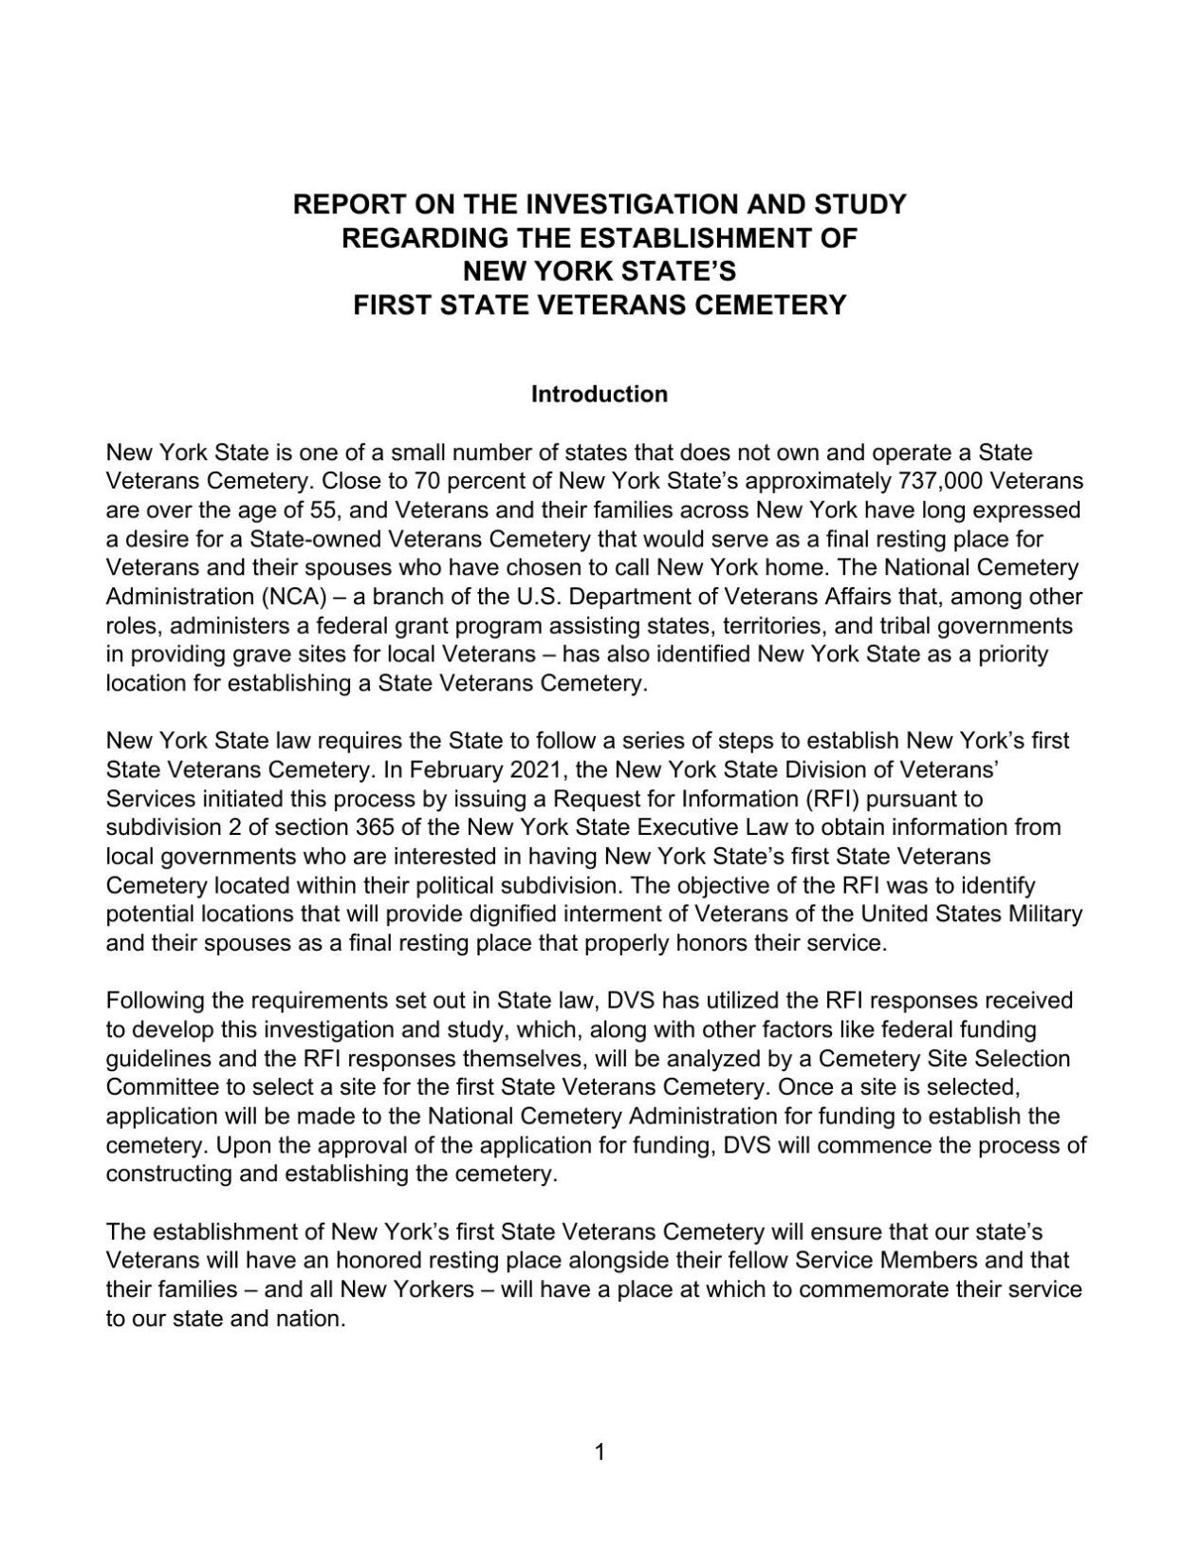 Report on establishment of first state veterans cemetery